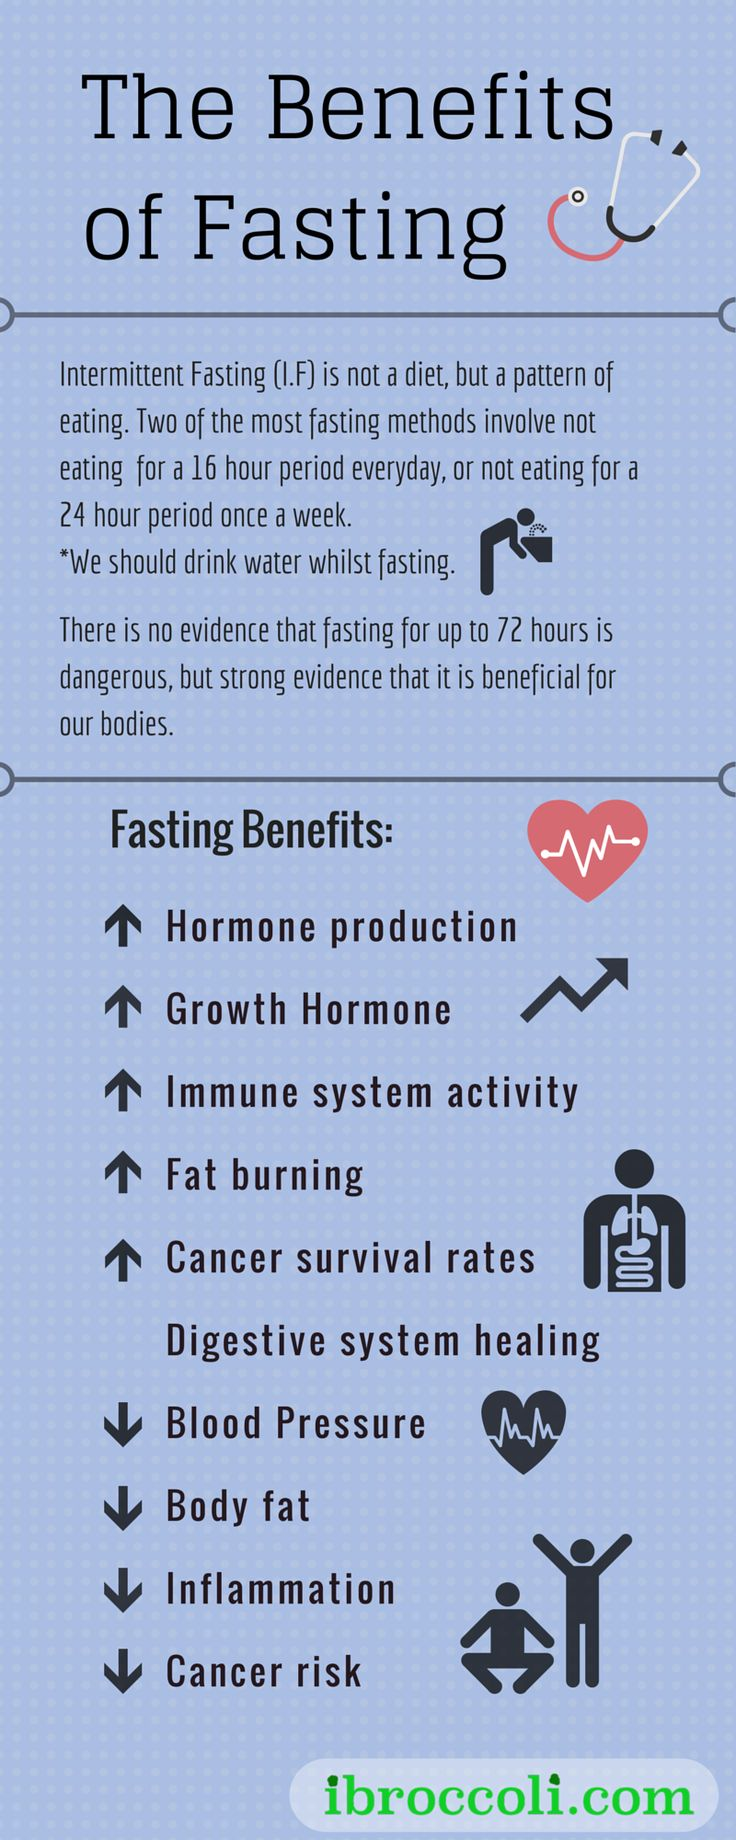 There are numerous benefits to intermittent fasting. Please visit www.ibroccoli.com to learn more about achieving optimal health and happiness. #fasting #intermittent #diet #exercise